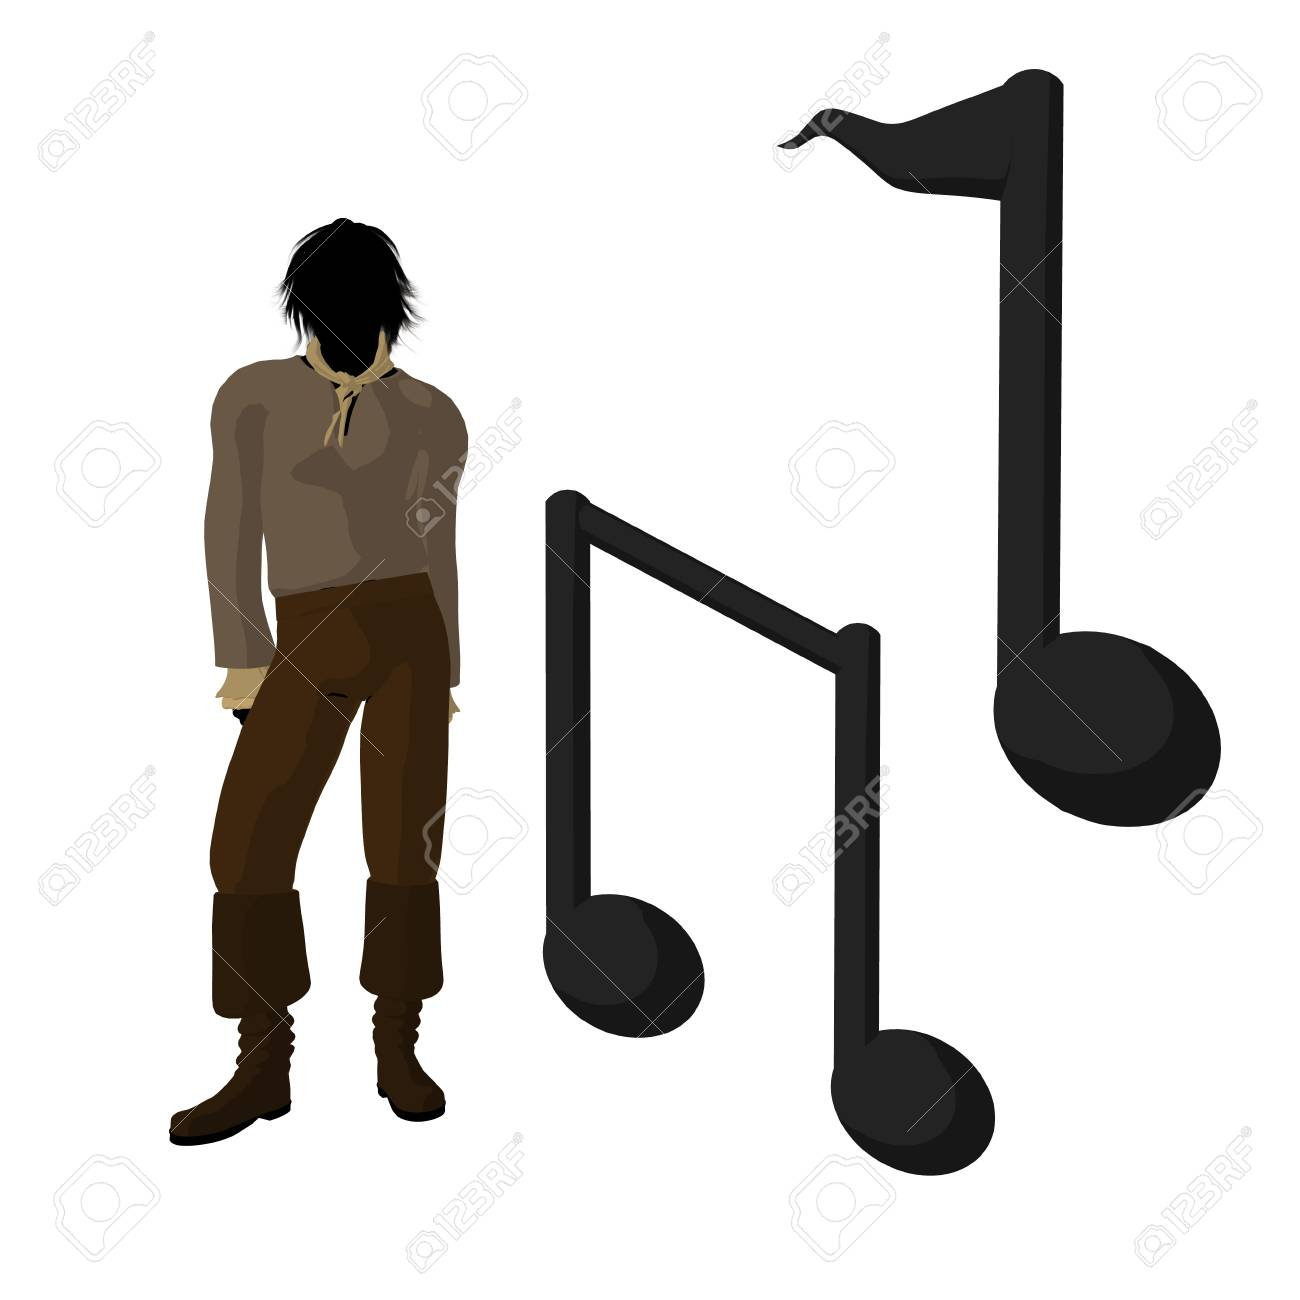 Ludwig van Beethoven musical notes on a white background Stock Photo - 9399941